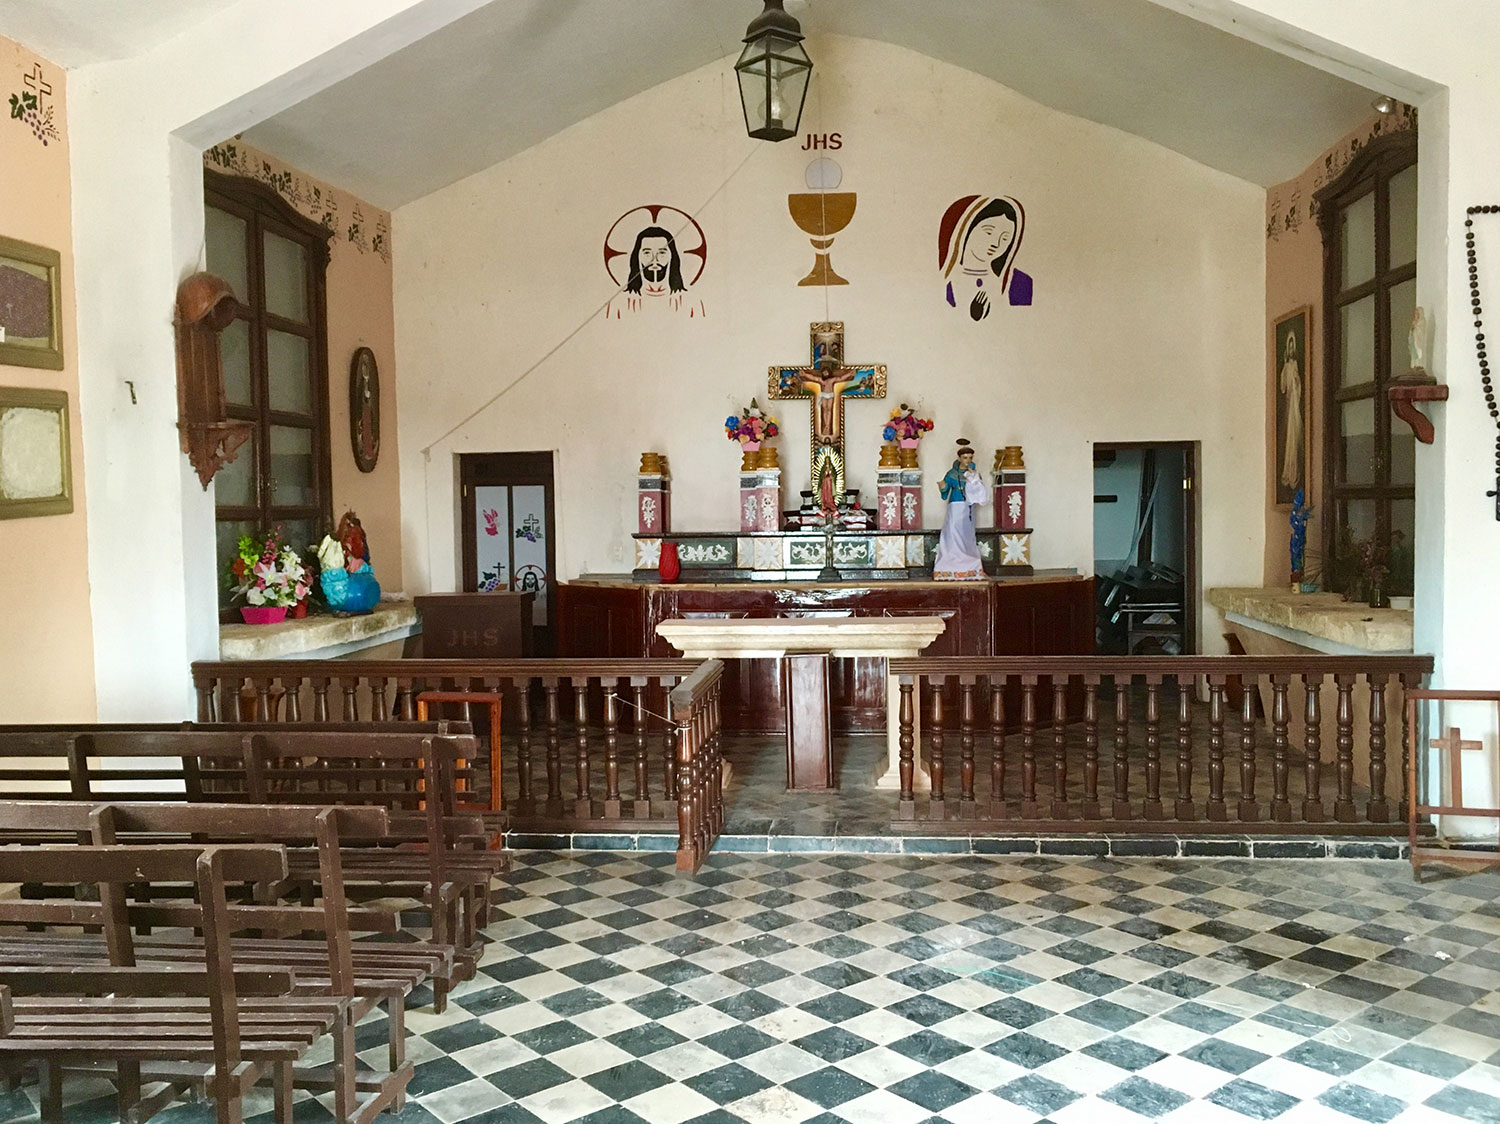 Inside the hacienda chapel.